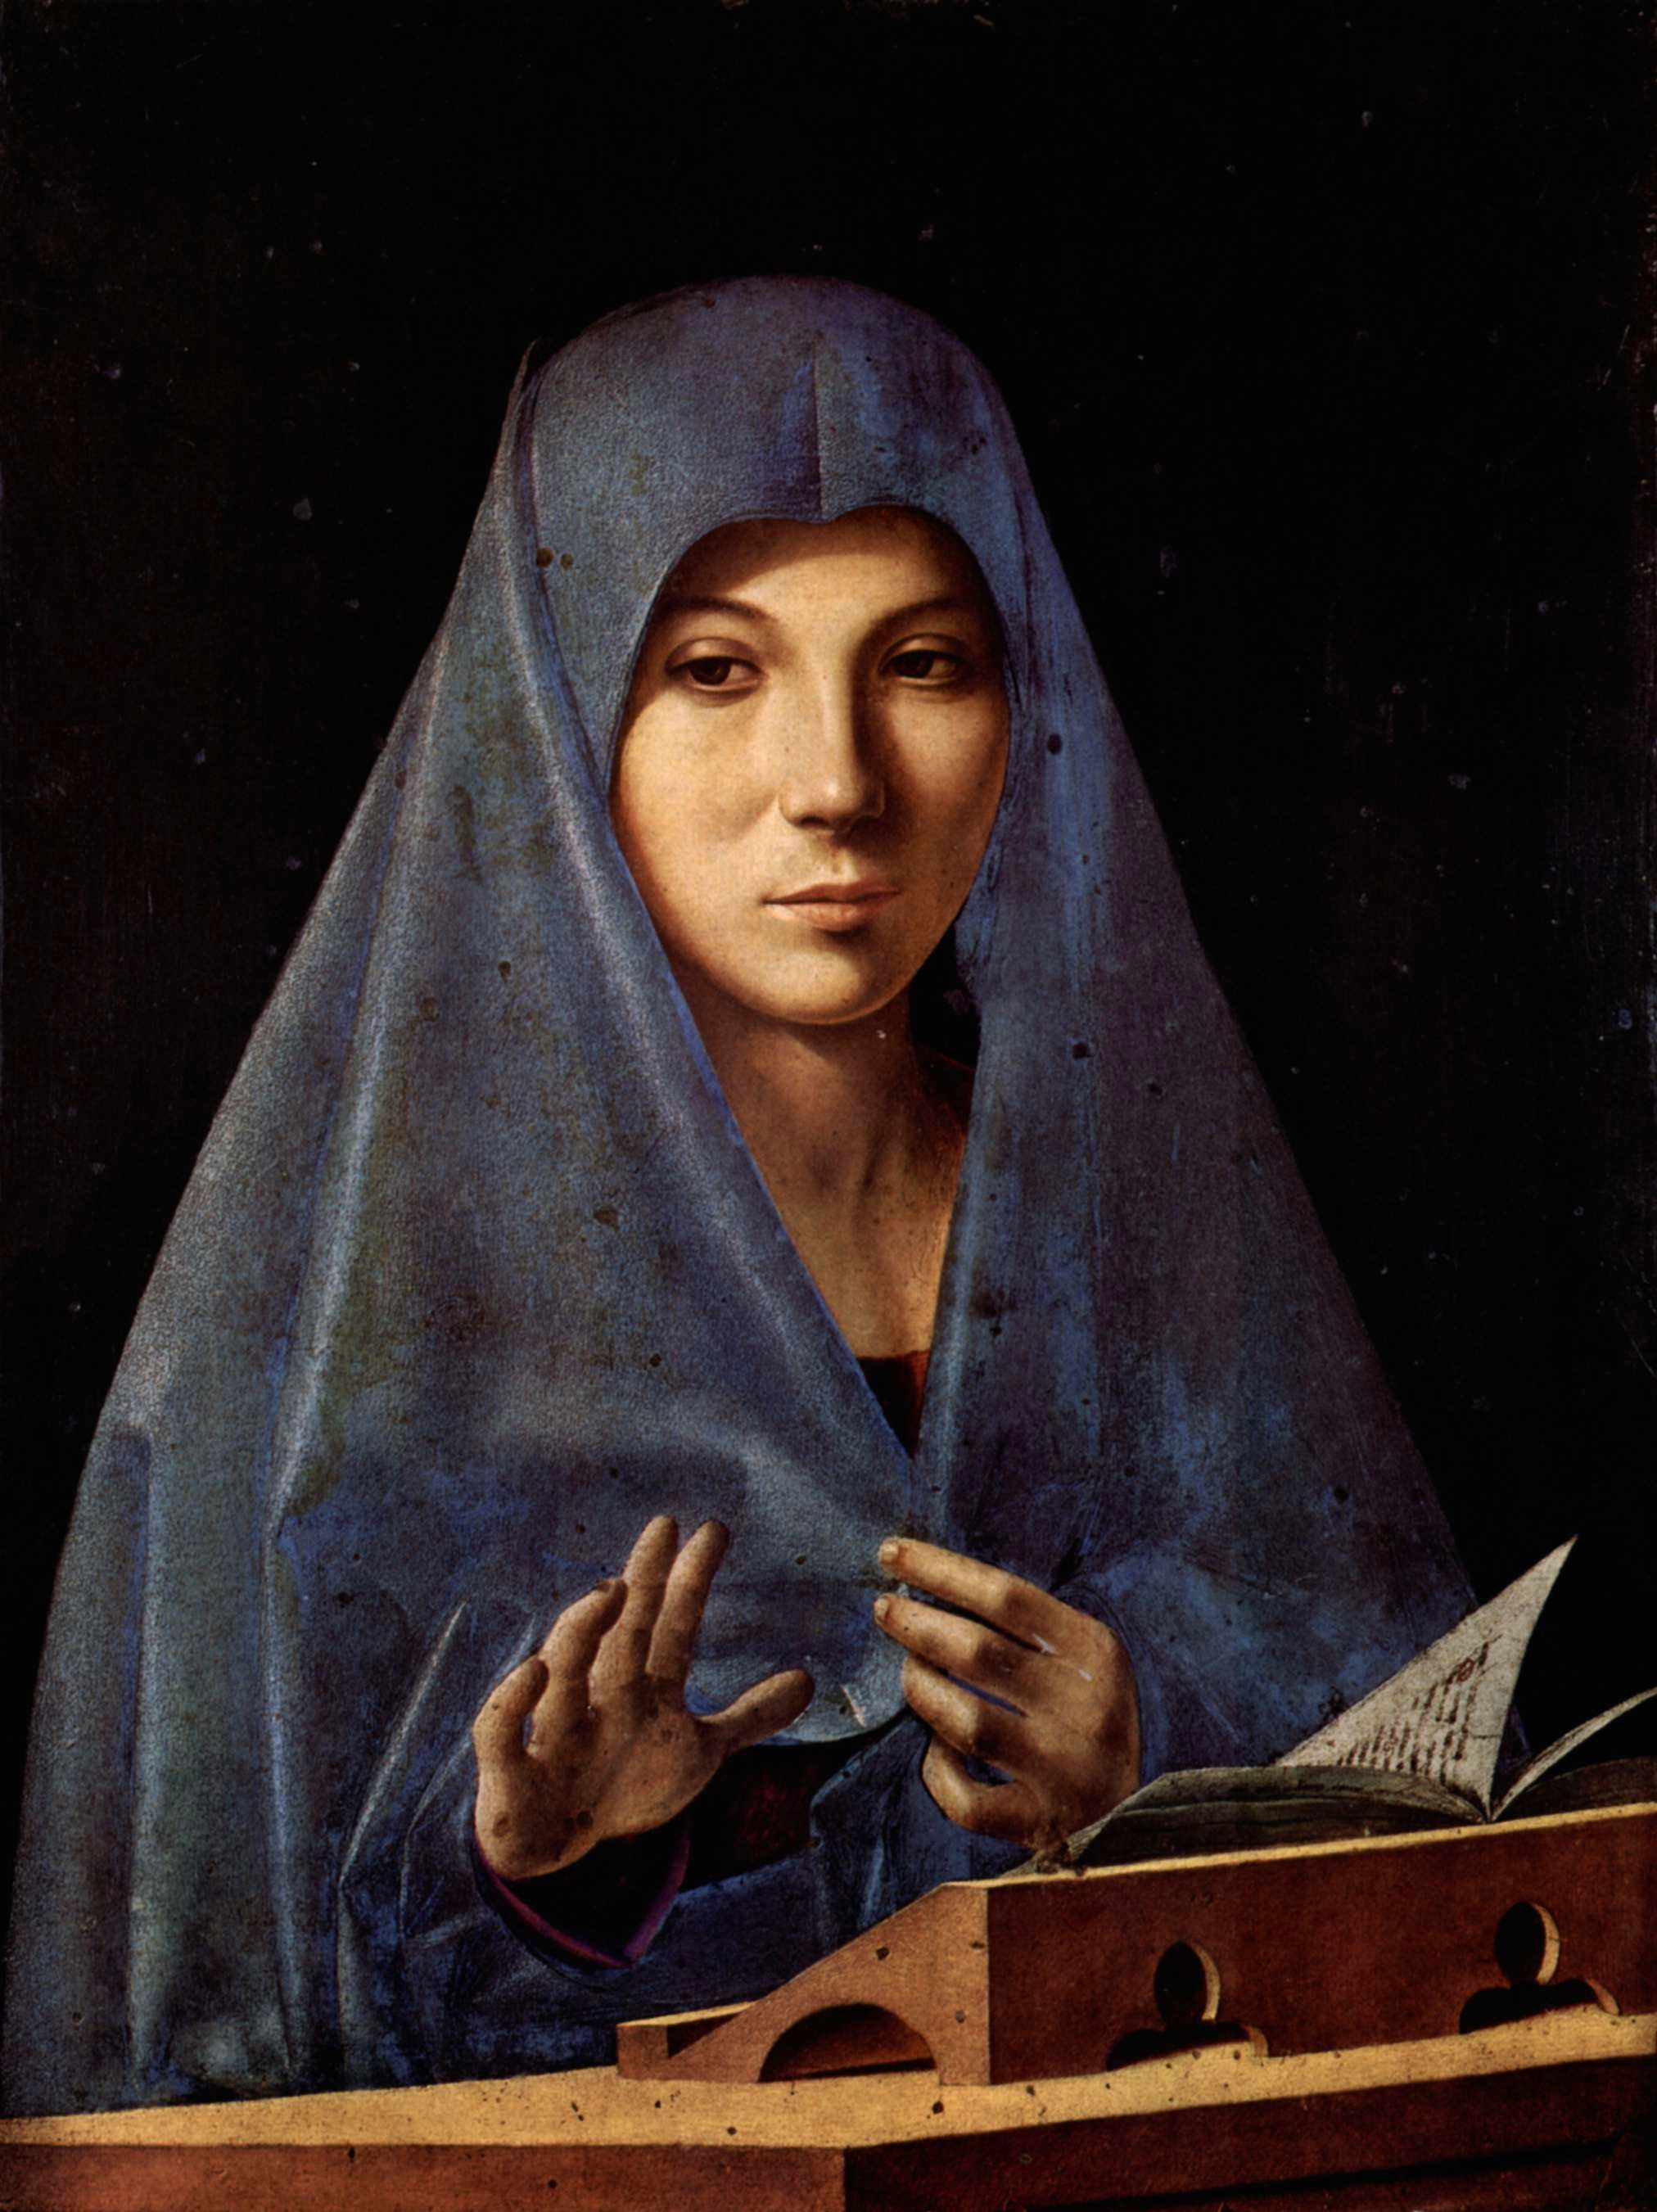 Antonello_da_Messina_Virgen de la Anunciacion